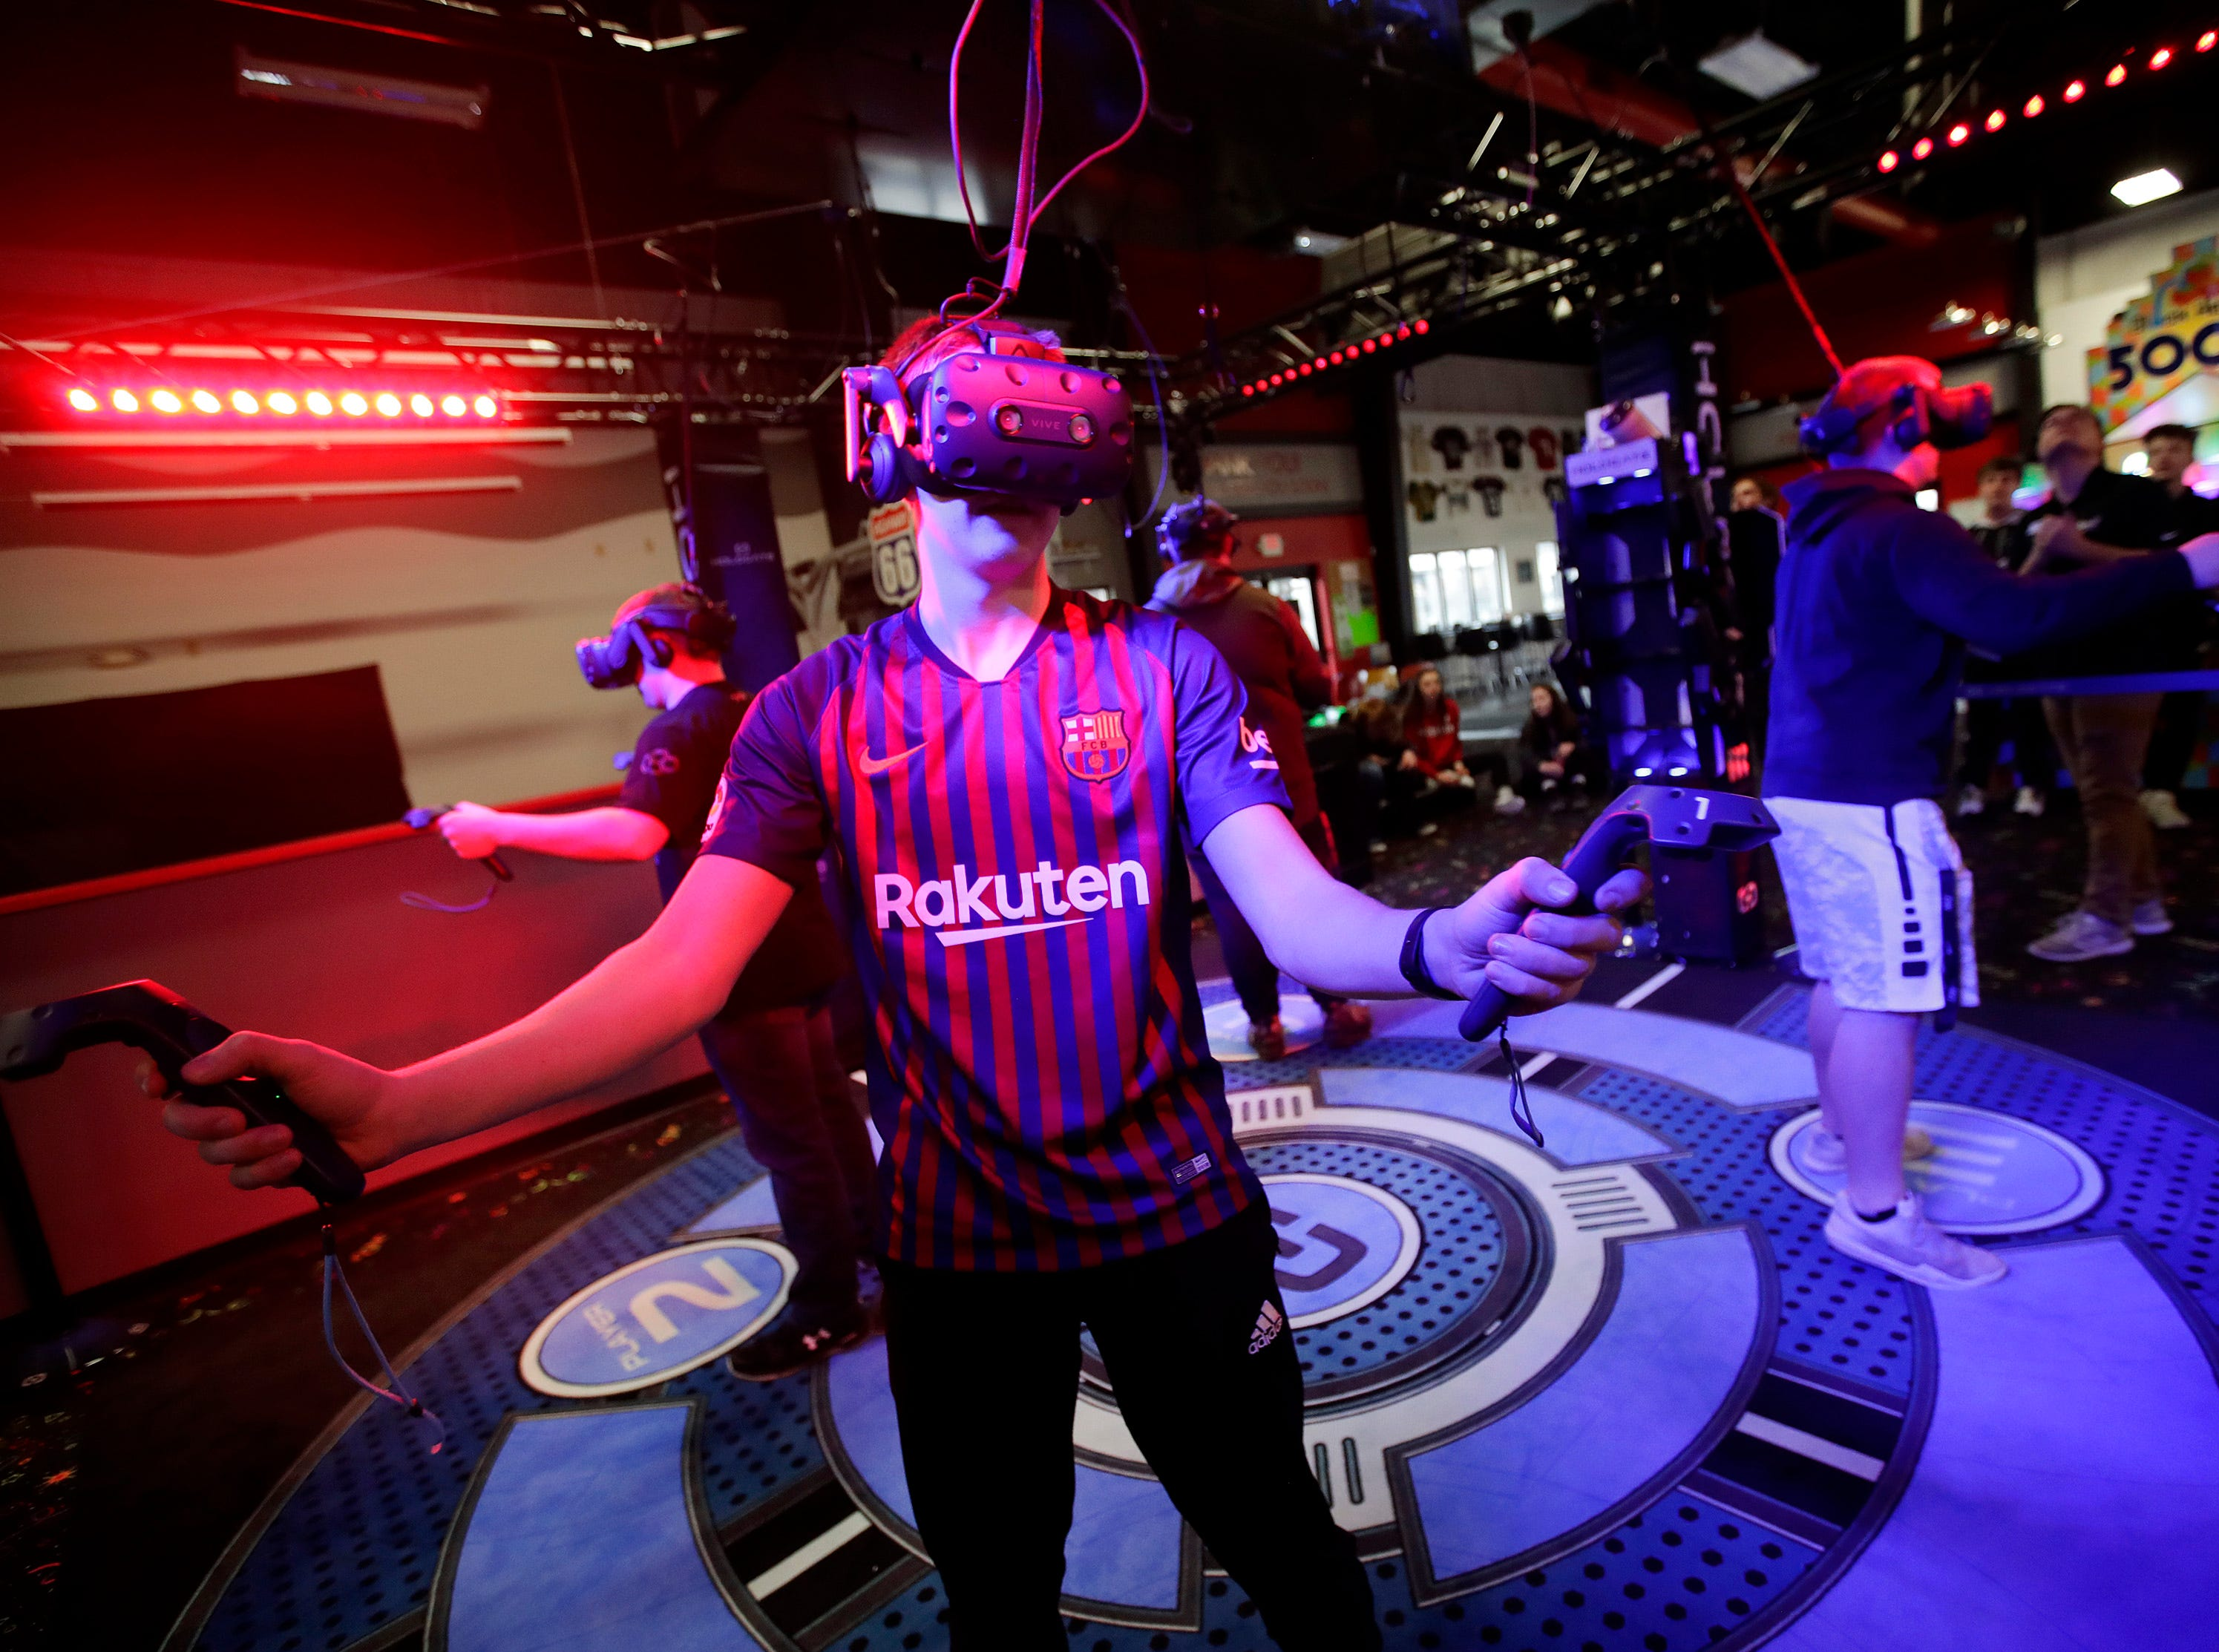 Eli Ruplinger, a senior at Kimberly High School uses the new Hologate virtual reality gaming system at Badger Sports Park during a Lifetime Sports and Fitness physical education class with Kimberly High School Tuesday, Jan. 8, 2019, Appleton, Wis. Badger Sports Park started using the VR system in December.